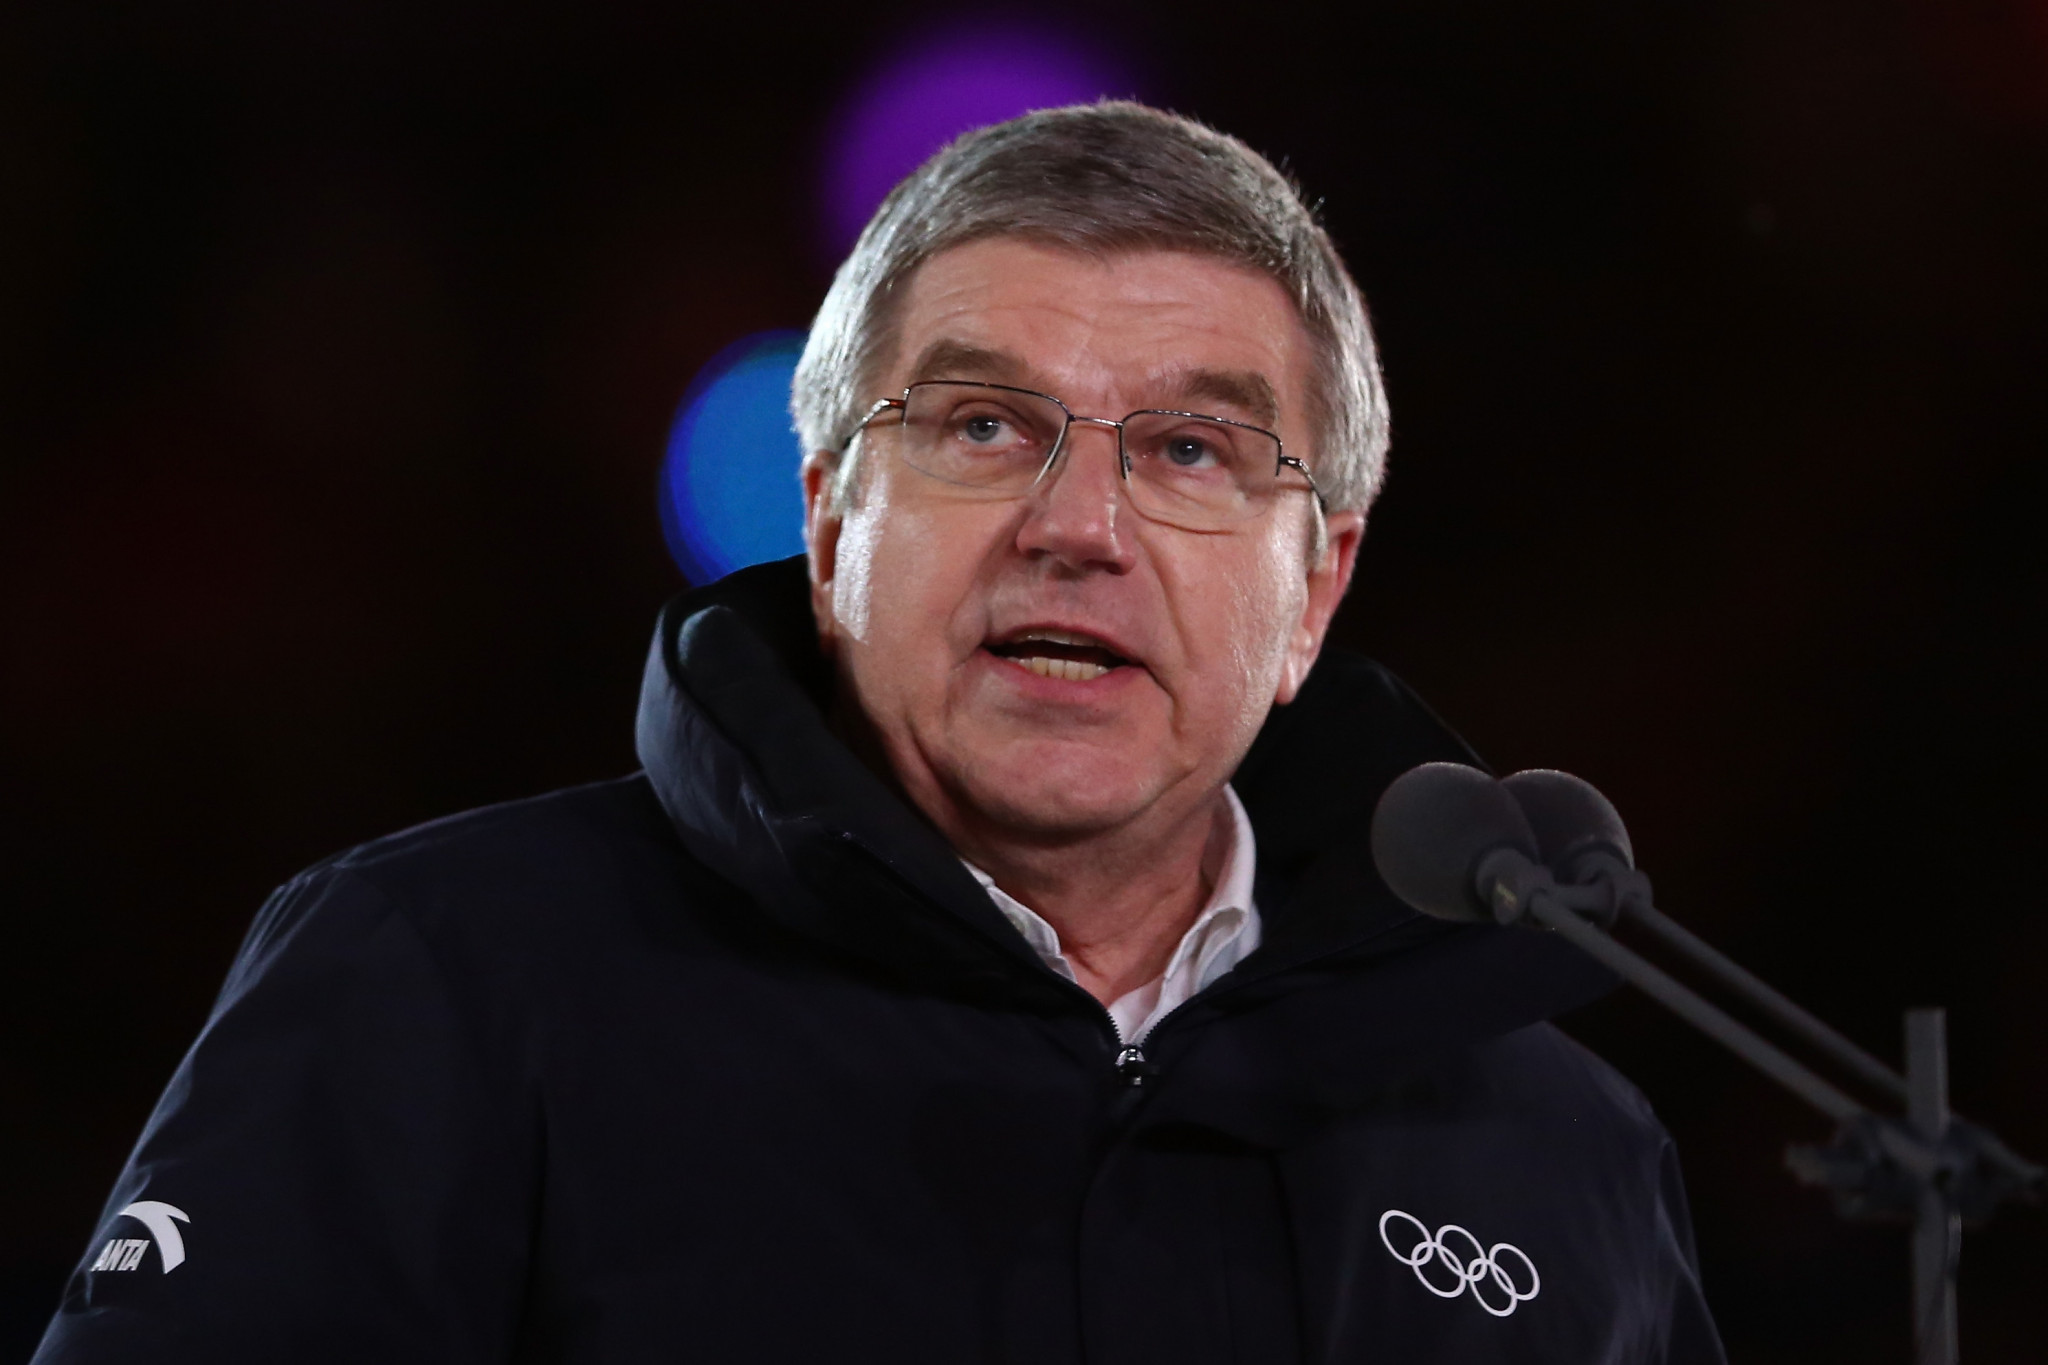 Thomas Bach is set to receive South Korea's highest sporting honour ©Getty Images